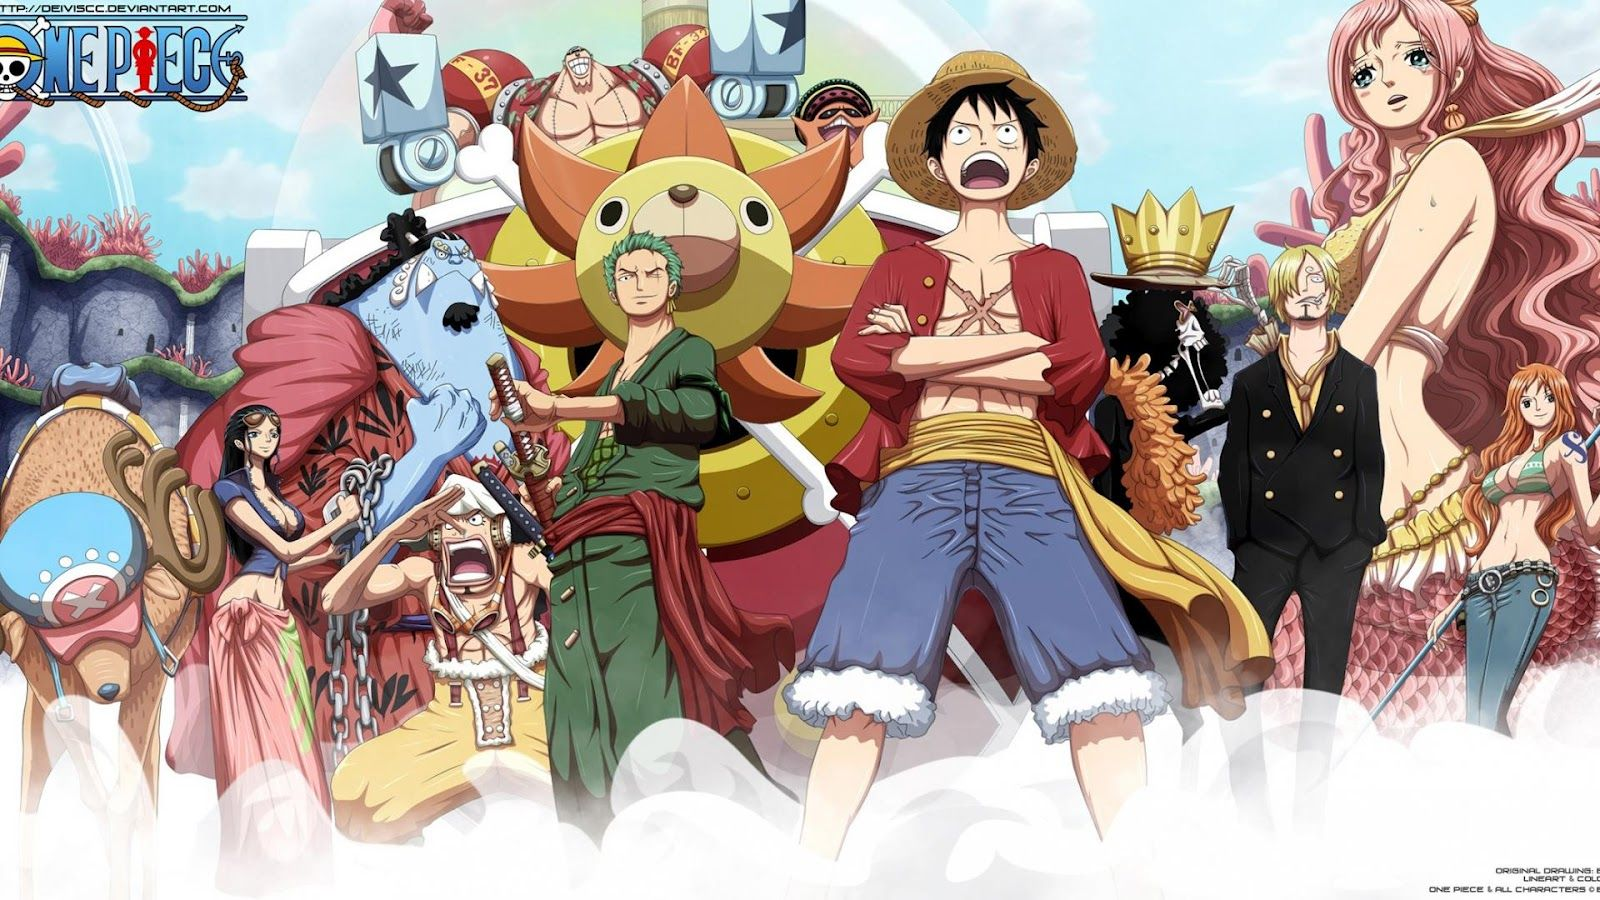 One Piece Wallpaper 1920x1080 New World Free Hd For Desktop Anime One Piece Episodes One Piece Anime